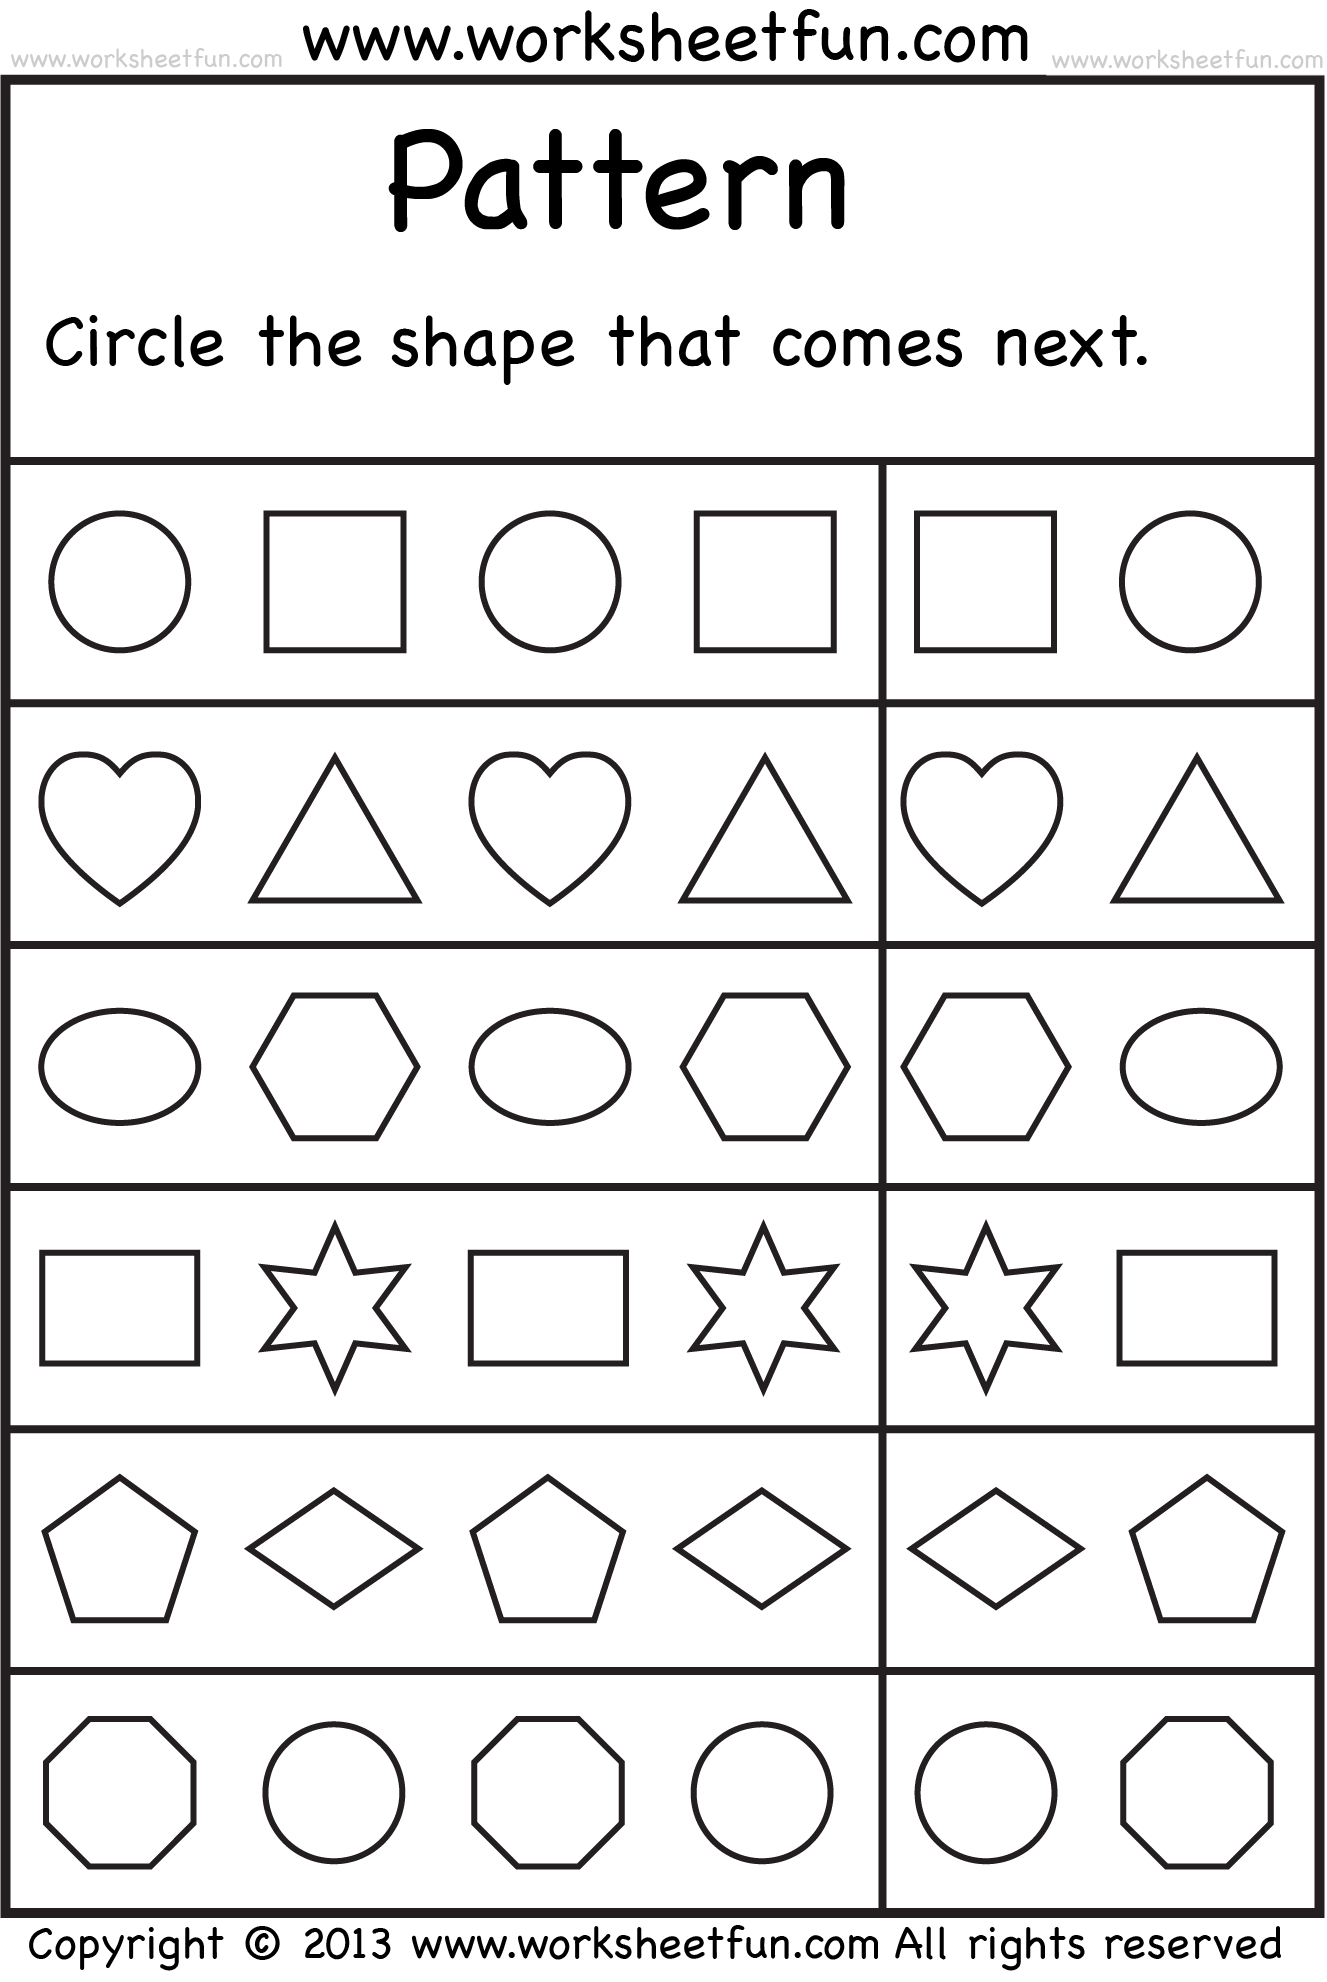 Weirdmailus  Gorgeous  Images About School Worksheets On Pinterest  Number Words  With Magnificent  Images About School Worksheets On Pinterest  Number Words Alphabet Worksheets And Free Printable Kindergarten Worksheets With Divine Star Spangled Banner Worksheets Also The Skeletal System Worksheets In Addition Worksheets For Grade  Science And Preschool Preposition Worksheets As Well As Subtraction Worksheets For Kids Additionally Little Red Hen Worksheet From Pinterestcom With Weirdmailus  Magnificent  Images About School Worksheets On Pinterest  Number Words  With Divine  Images About School Worksheets On Pinterest  Number Words Alphabet Worksheets And Free Printable Kindergarten Worksheets And Gorgeous Star Spangled Banner Worksheets Also The Skeletal System Worksheets In Addition Worksheets For Grade  Science From Pinterestcom